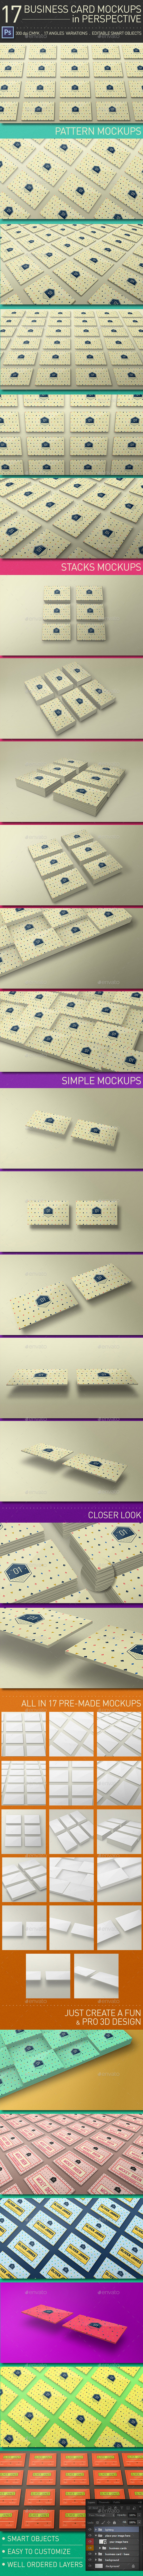 Business Card Mockups in Perspective - Business Cards Print